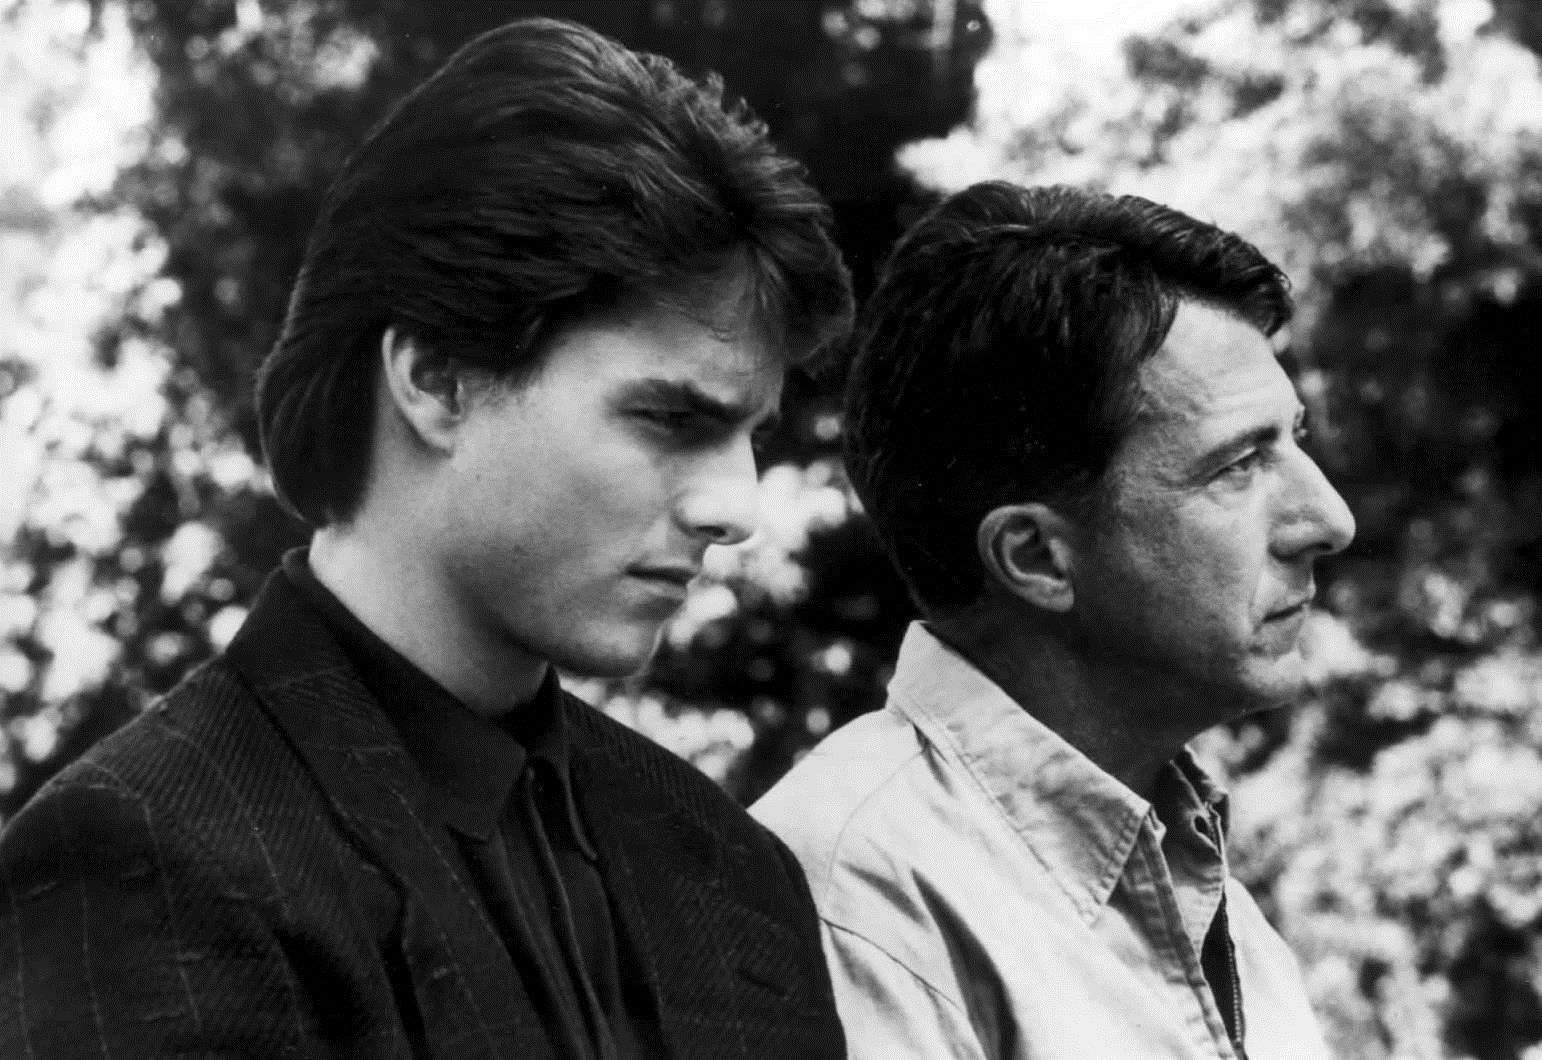 Were you born the year Dustin Hoffman (right) played Raymond Babbitt and Tom Cruise(left) played Charlie Babbitt in Rain Man?